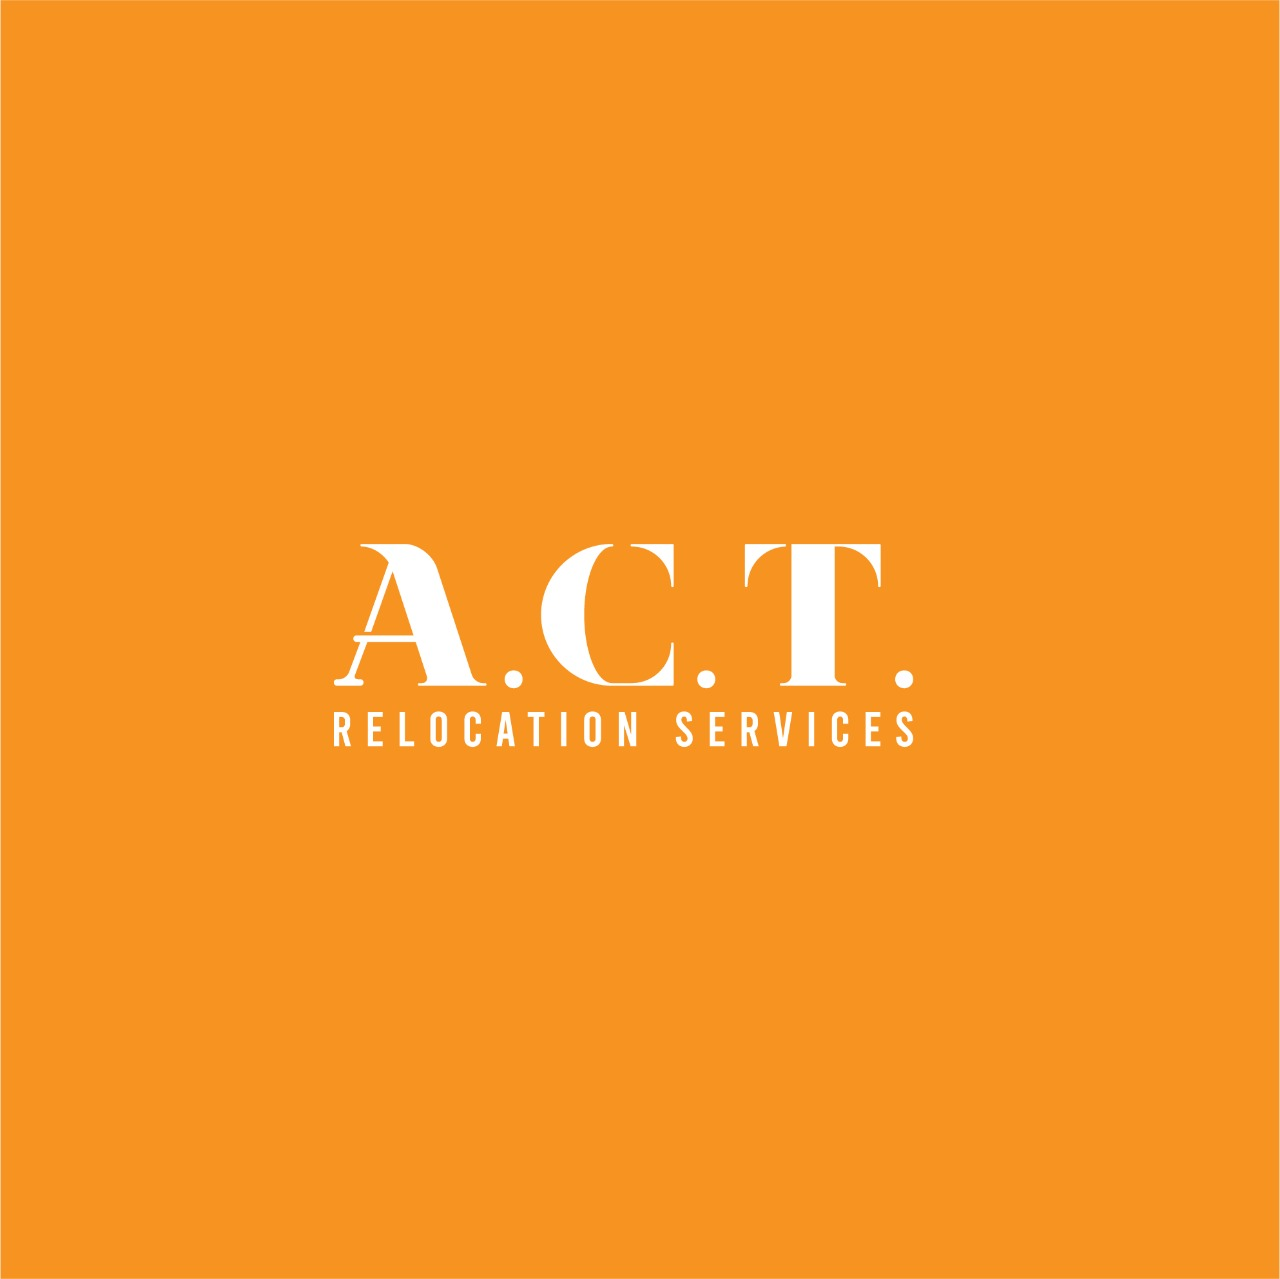 ACT Relocation Services